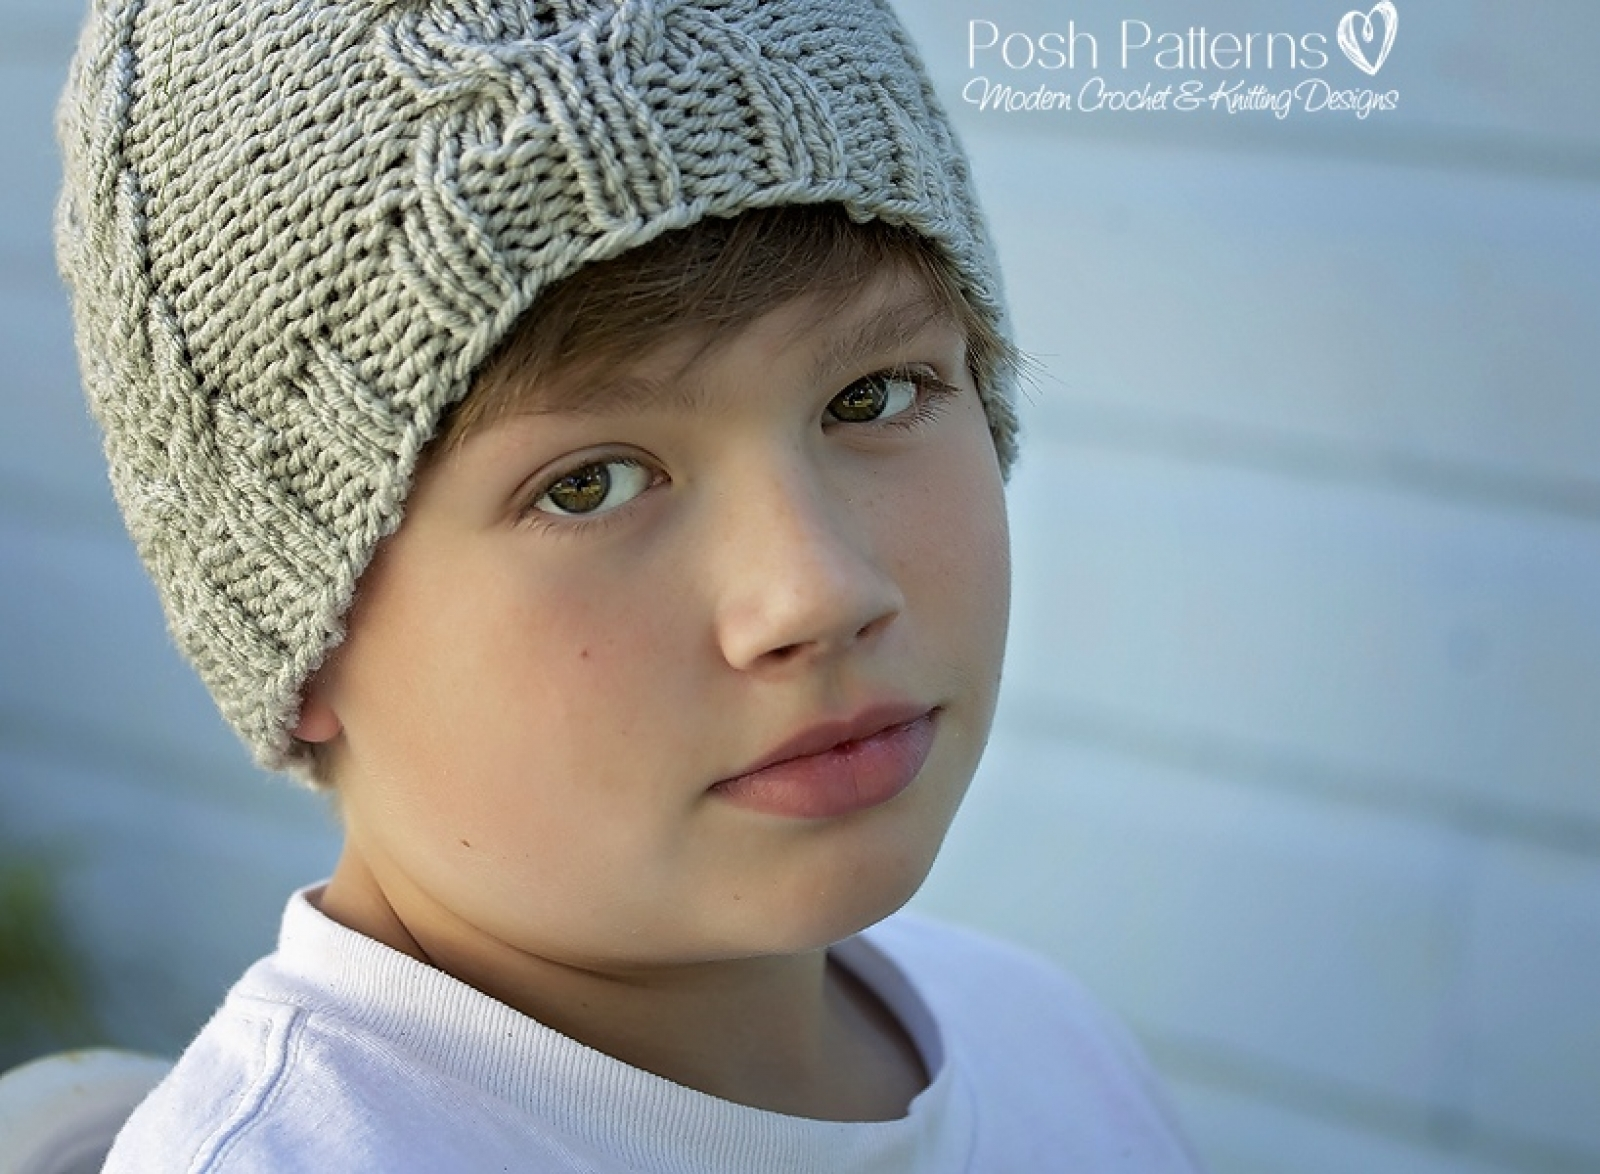 a62ba3b2bb1 cable hat knitting pattern. knit cable hat pattern